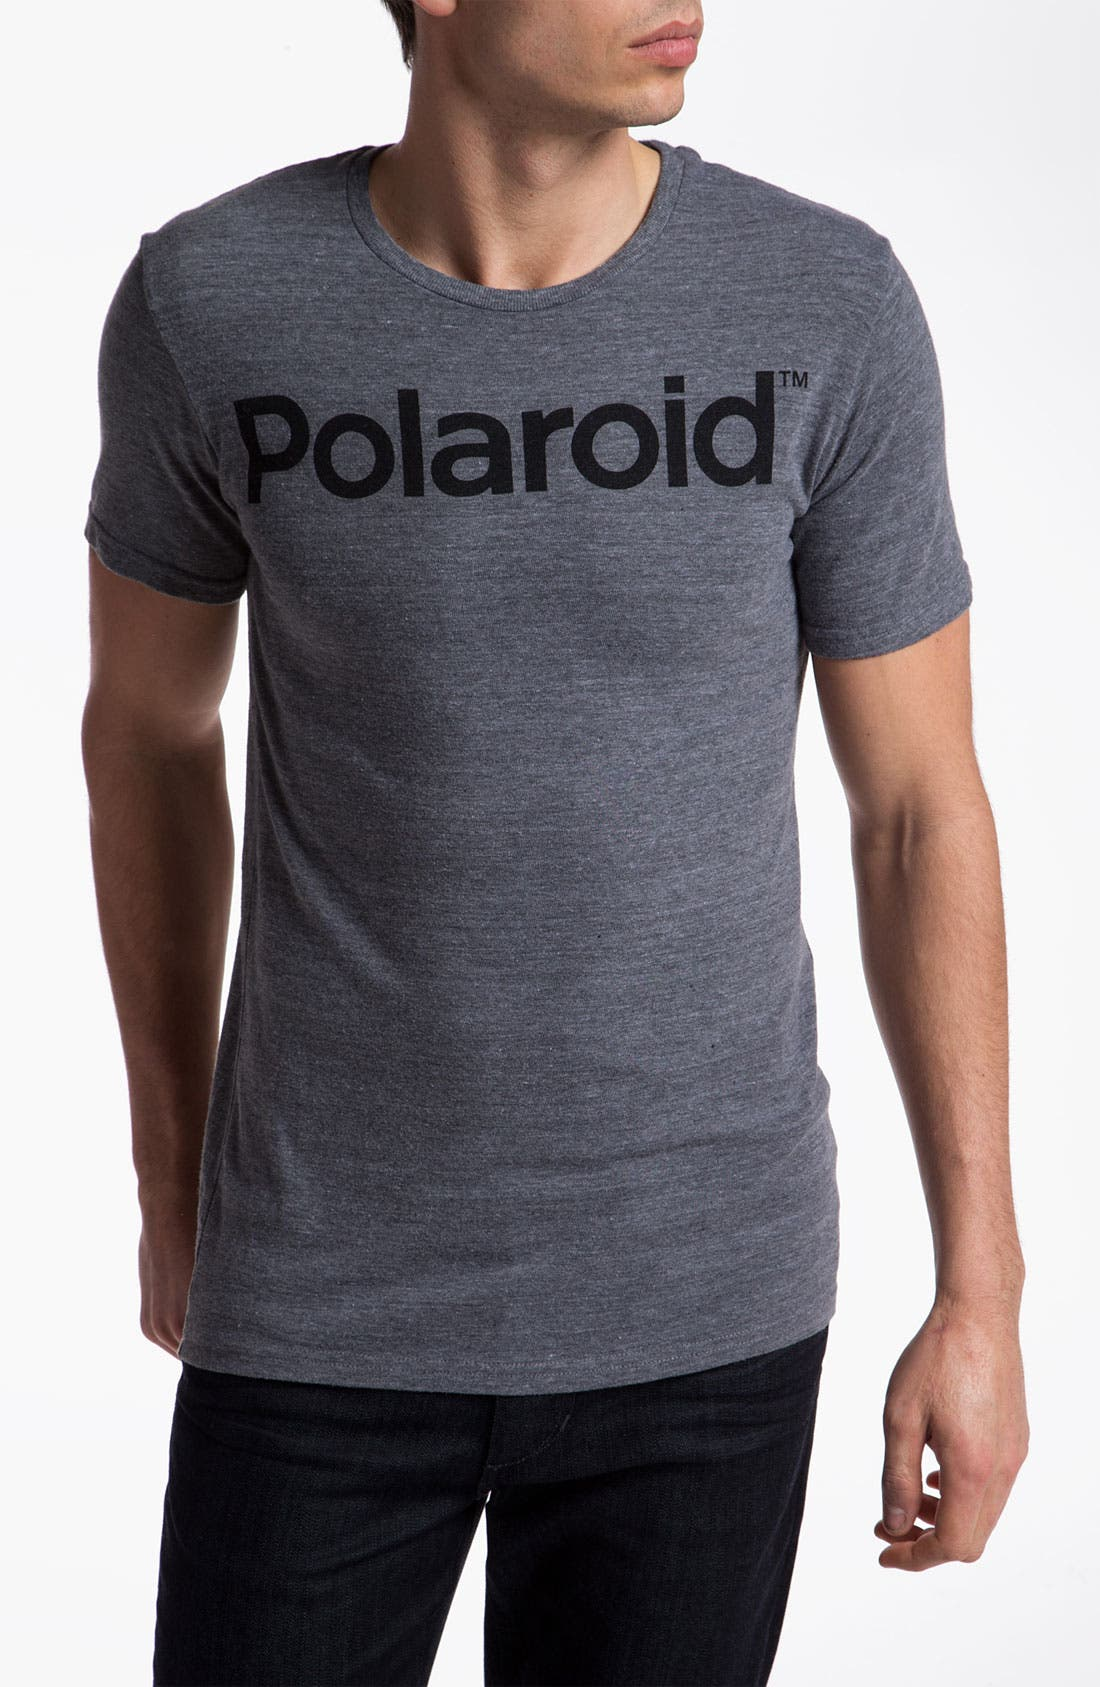 Alternate Image 1 Selected - Altru 'Polaroid®' Graphic T-Shirt